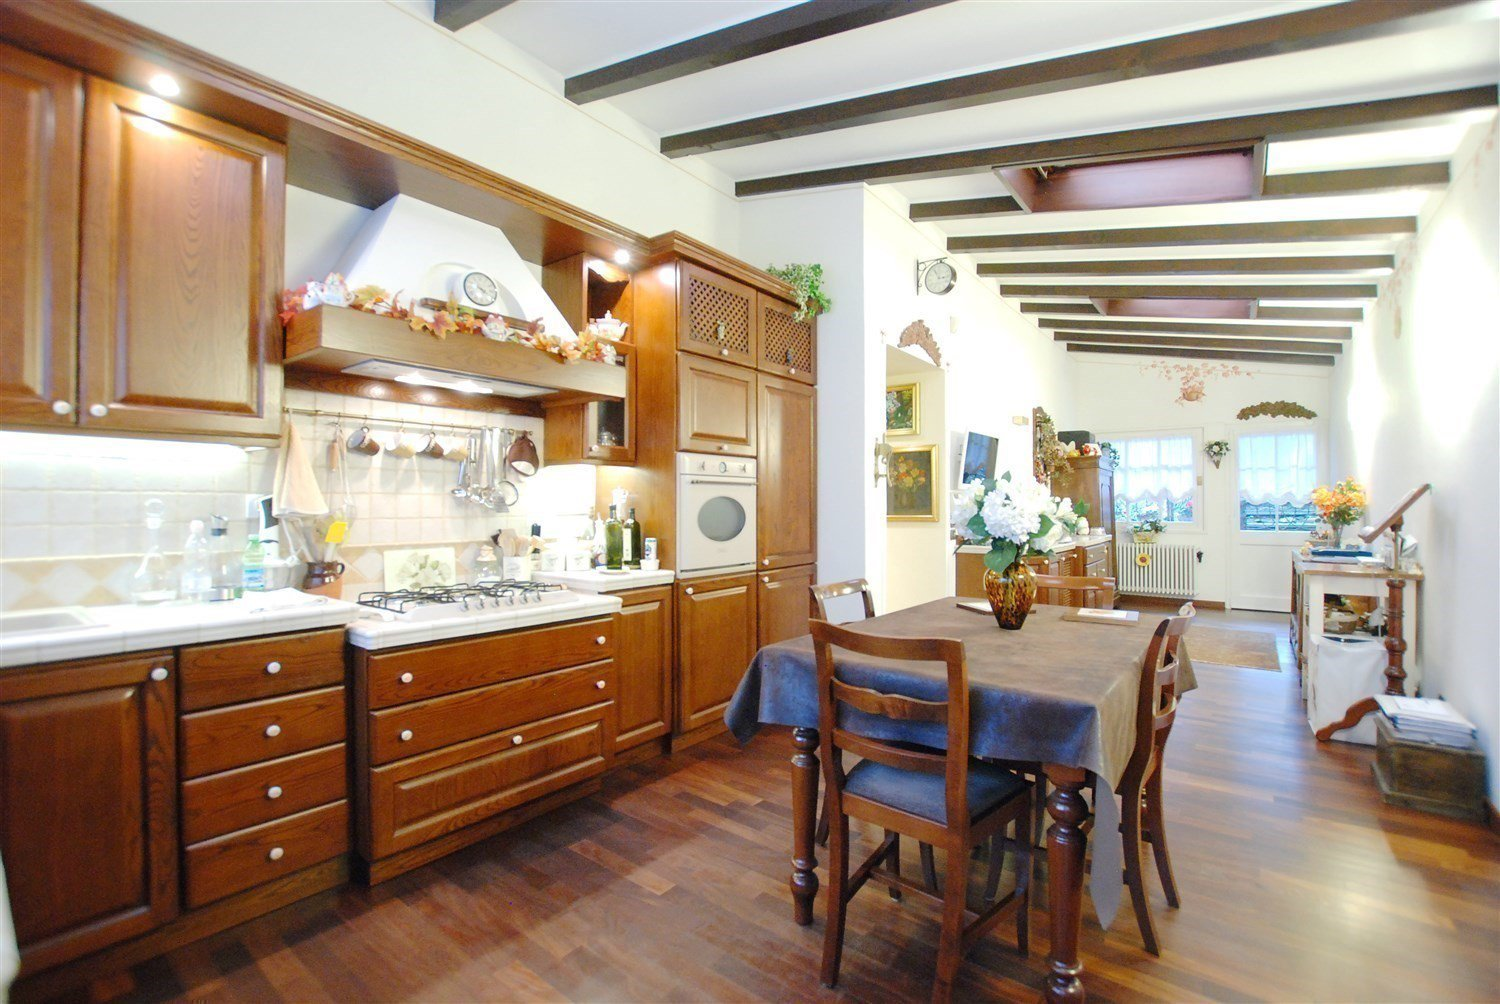 Luxurious villa for sale in Lesa - kitchen